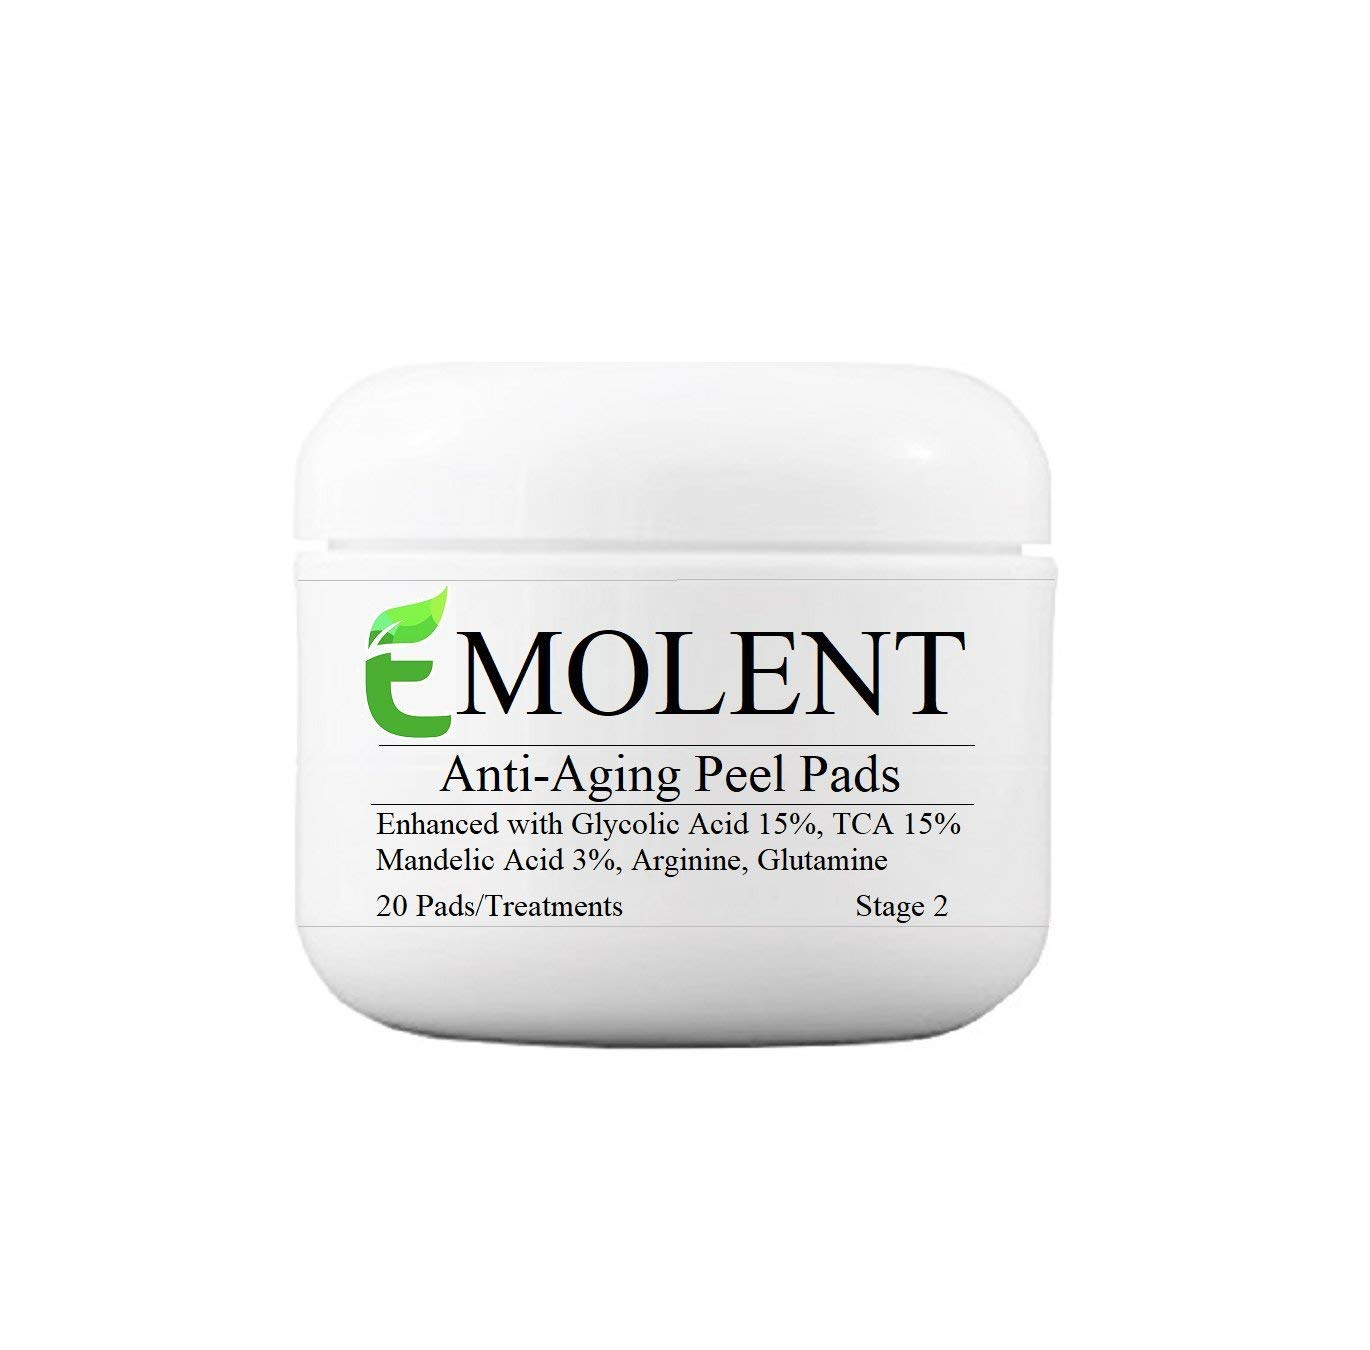 EMOLENT, Anti-Aging Peel Pads Enhanced with Glycolic Acid 15%, TCA 15%, Mandelic Acid 3%, Arginine, Glutamine, 20 Pads/Treatments